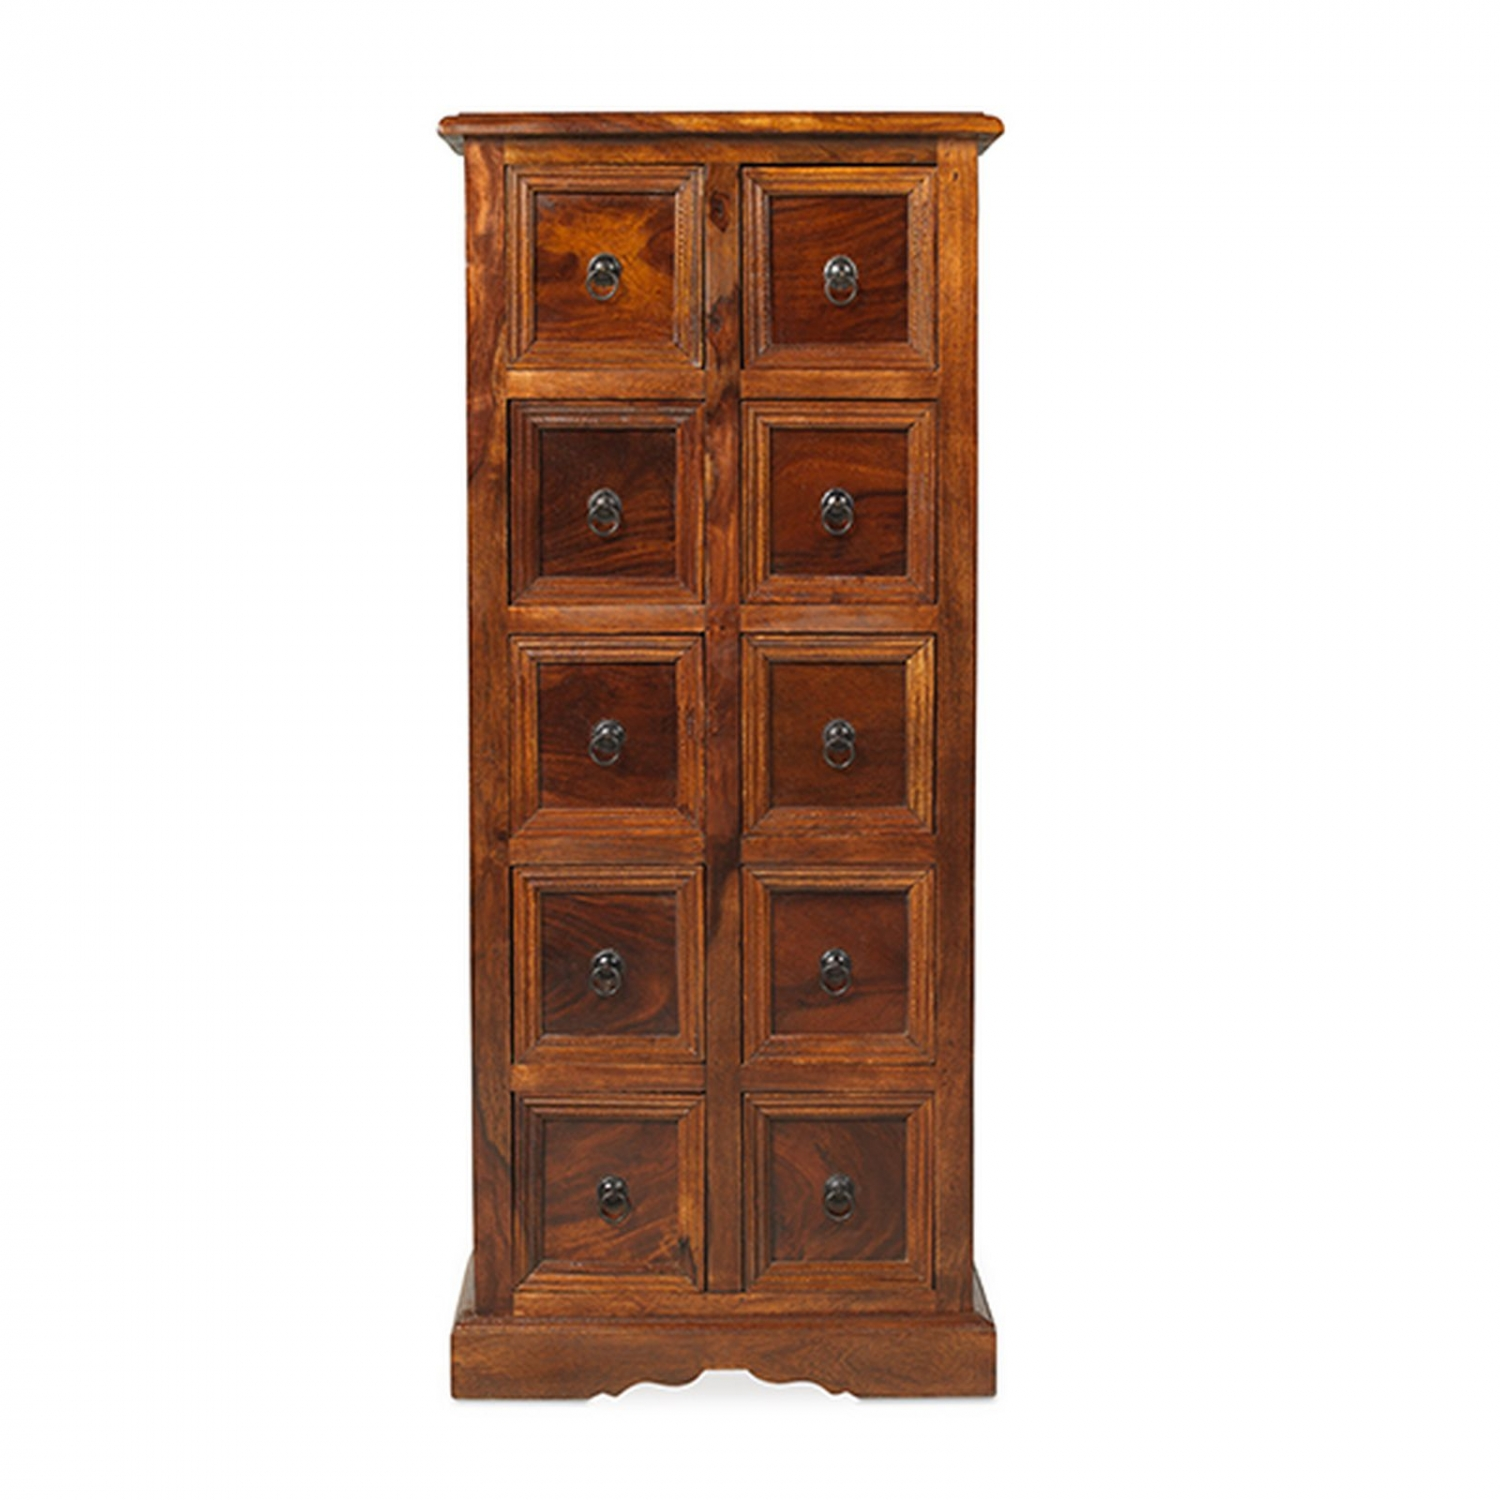 Bengal solid sheesham indian furniture CD storage cabinet chest of ...